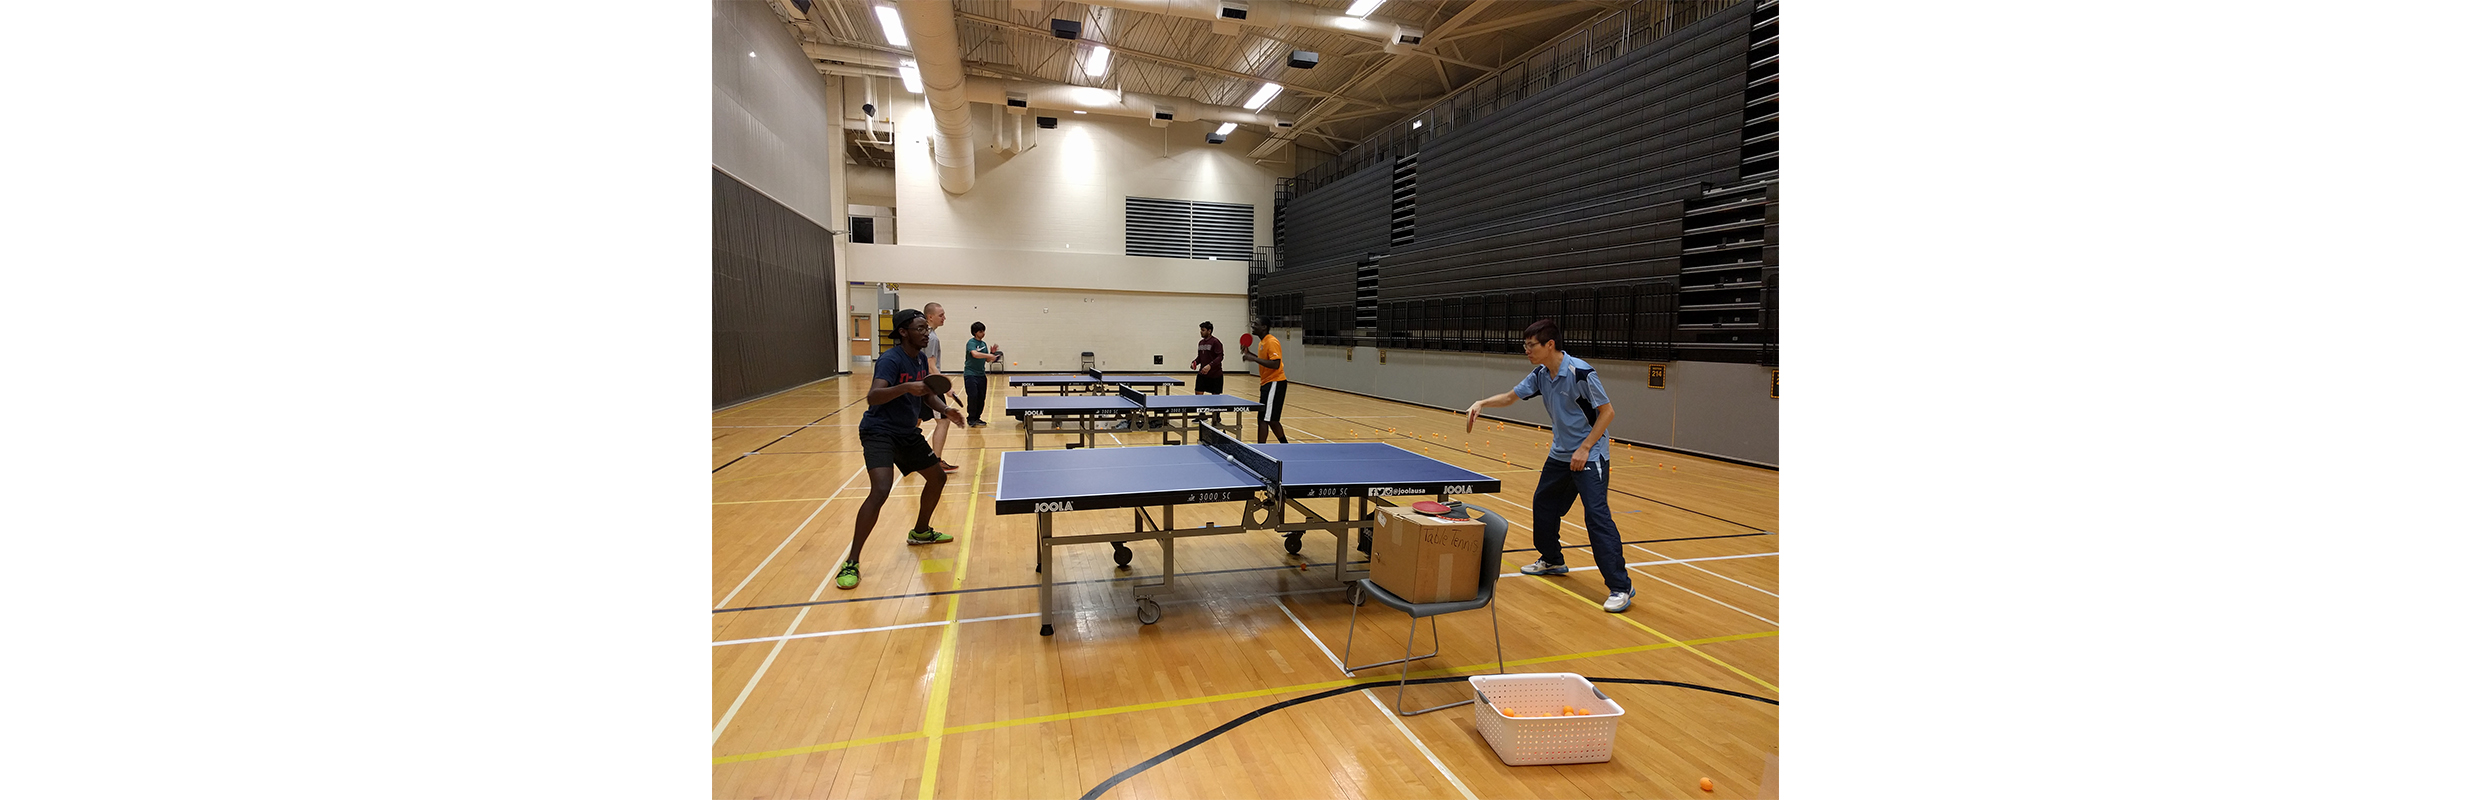 KSU Table Tennis